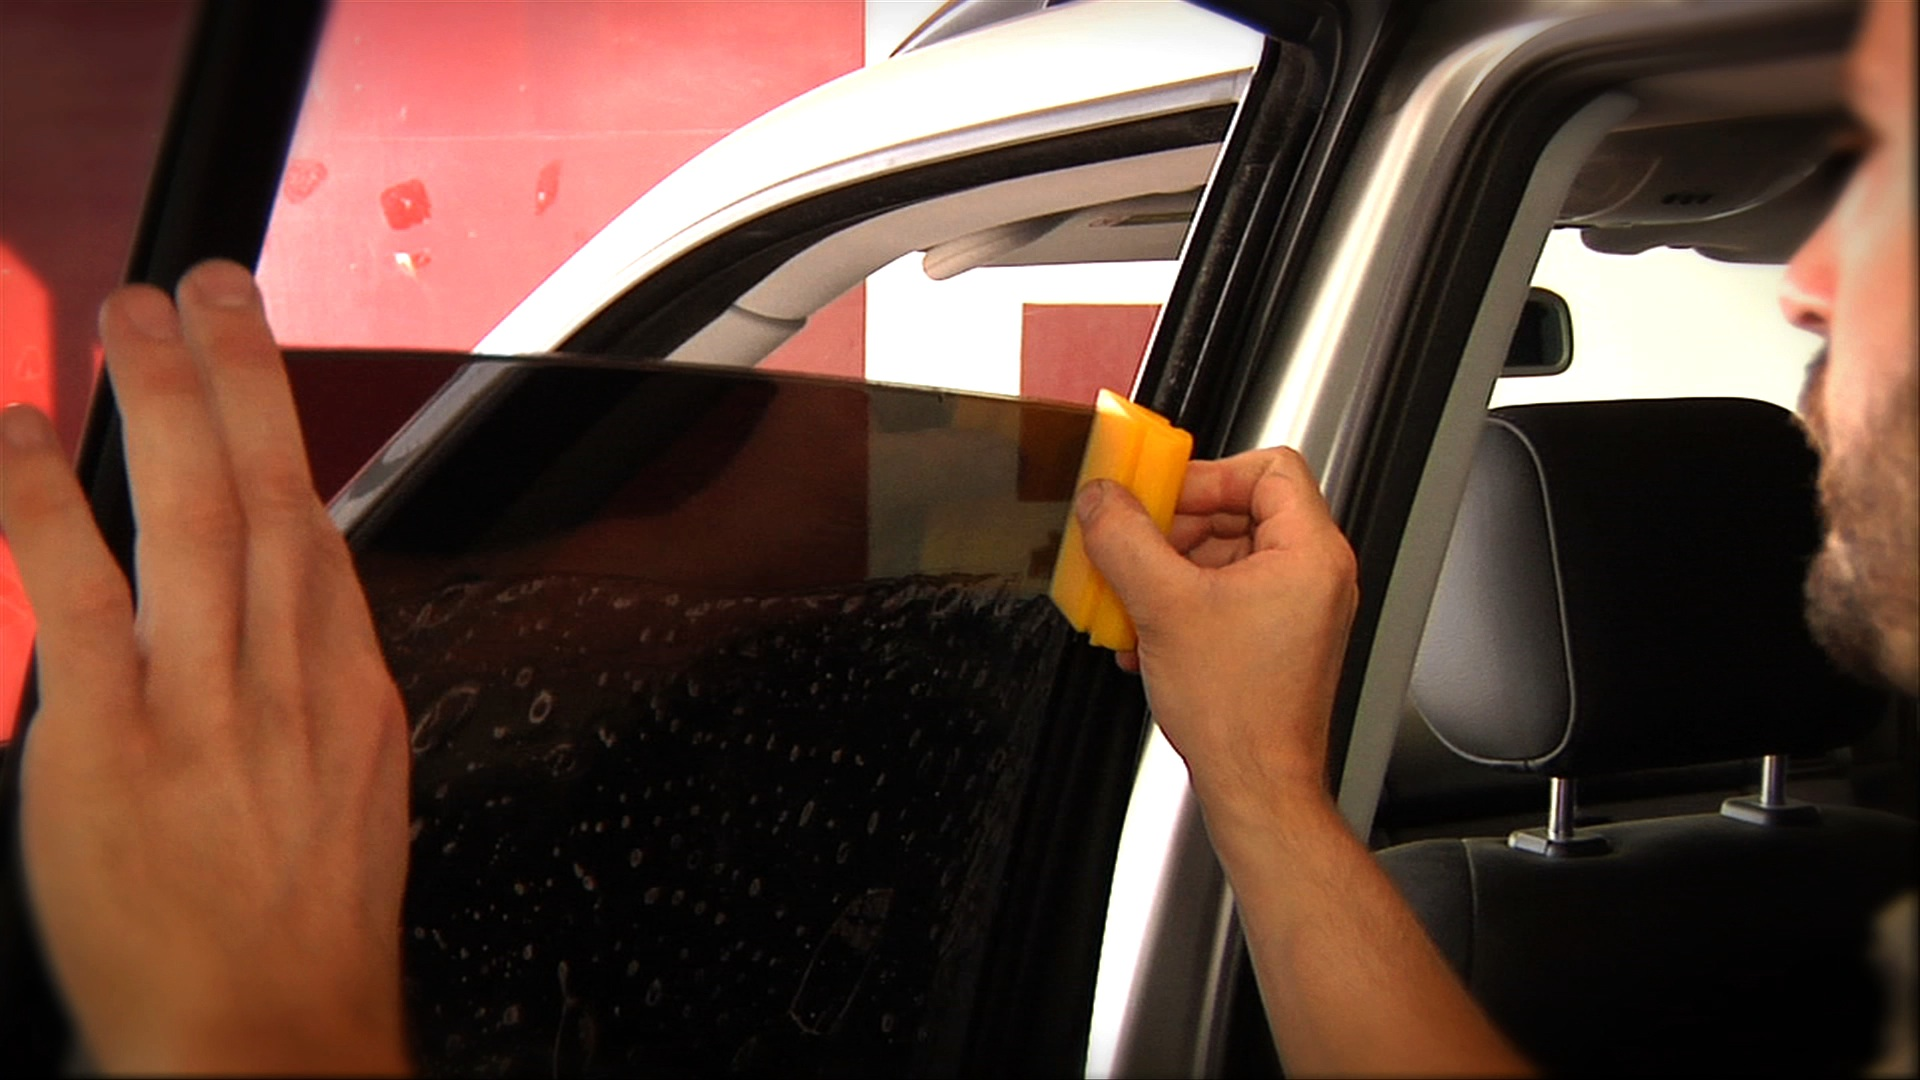 Illinois Window Tint Law >> Kelowna Window Tinting: High-quality Professional ...